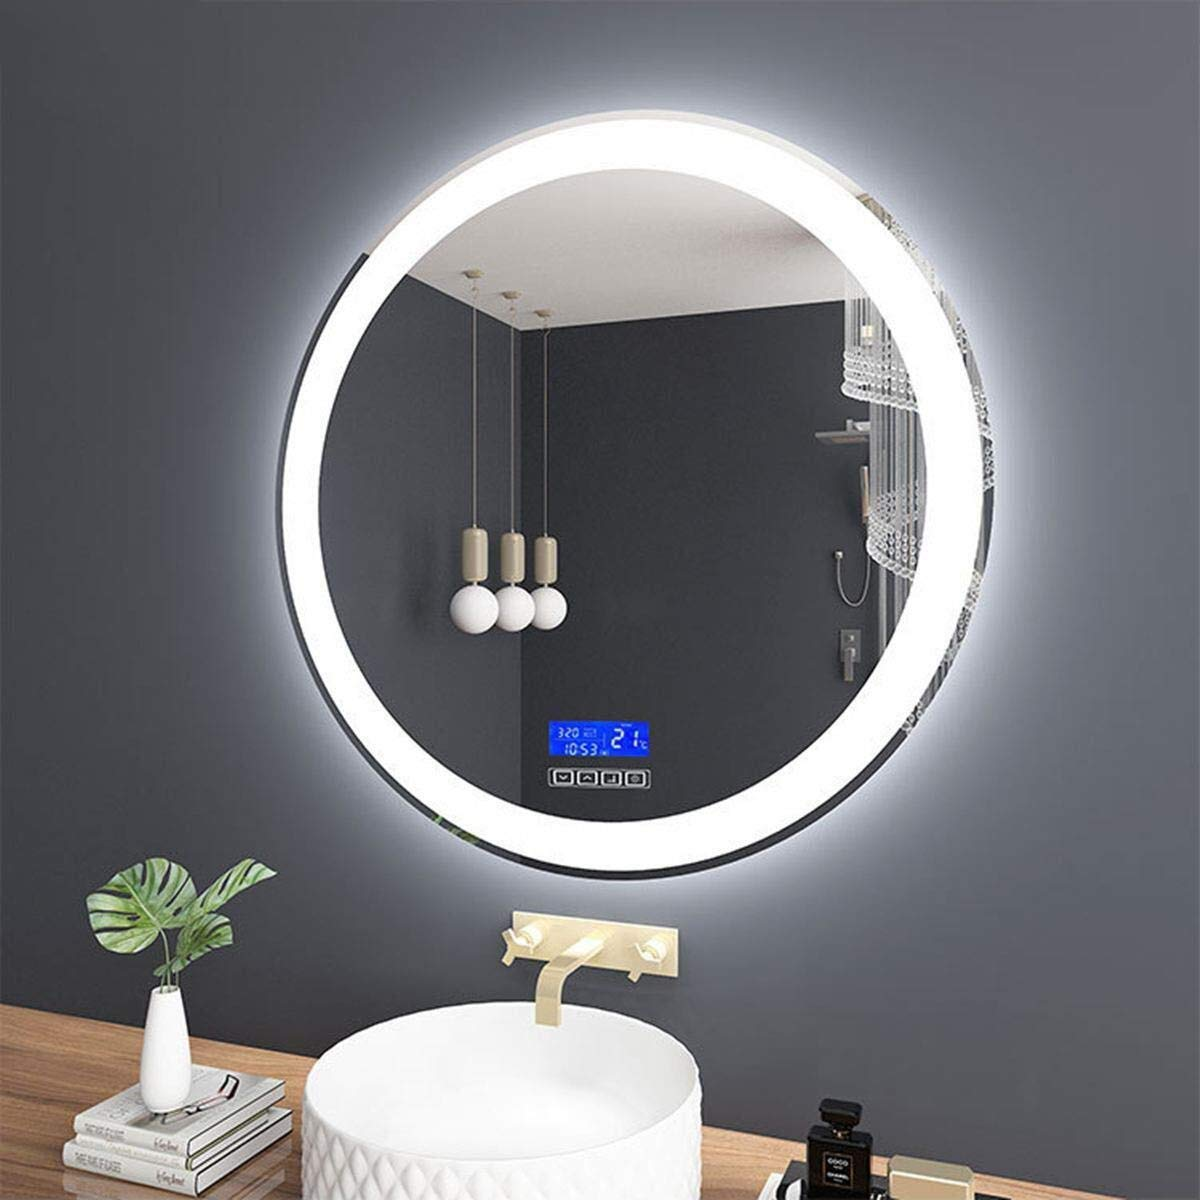 Beauty mirror LED Bathroom Mirror Wall Illuminated Bathroom Mirror White Warm Light Round Anti-fogging Washroom Toilet Makeup Mirror with Touch Switch Dressing mirror (Color : B, Size : 50CM) by Makeup Mirrors